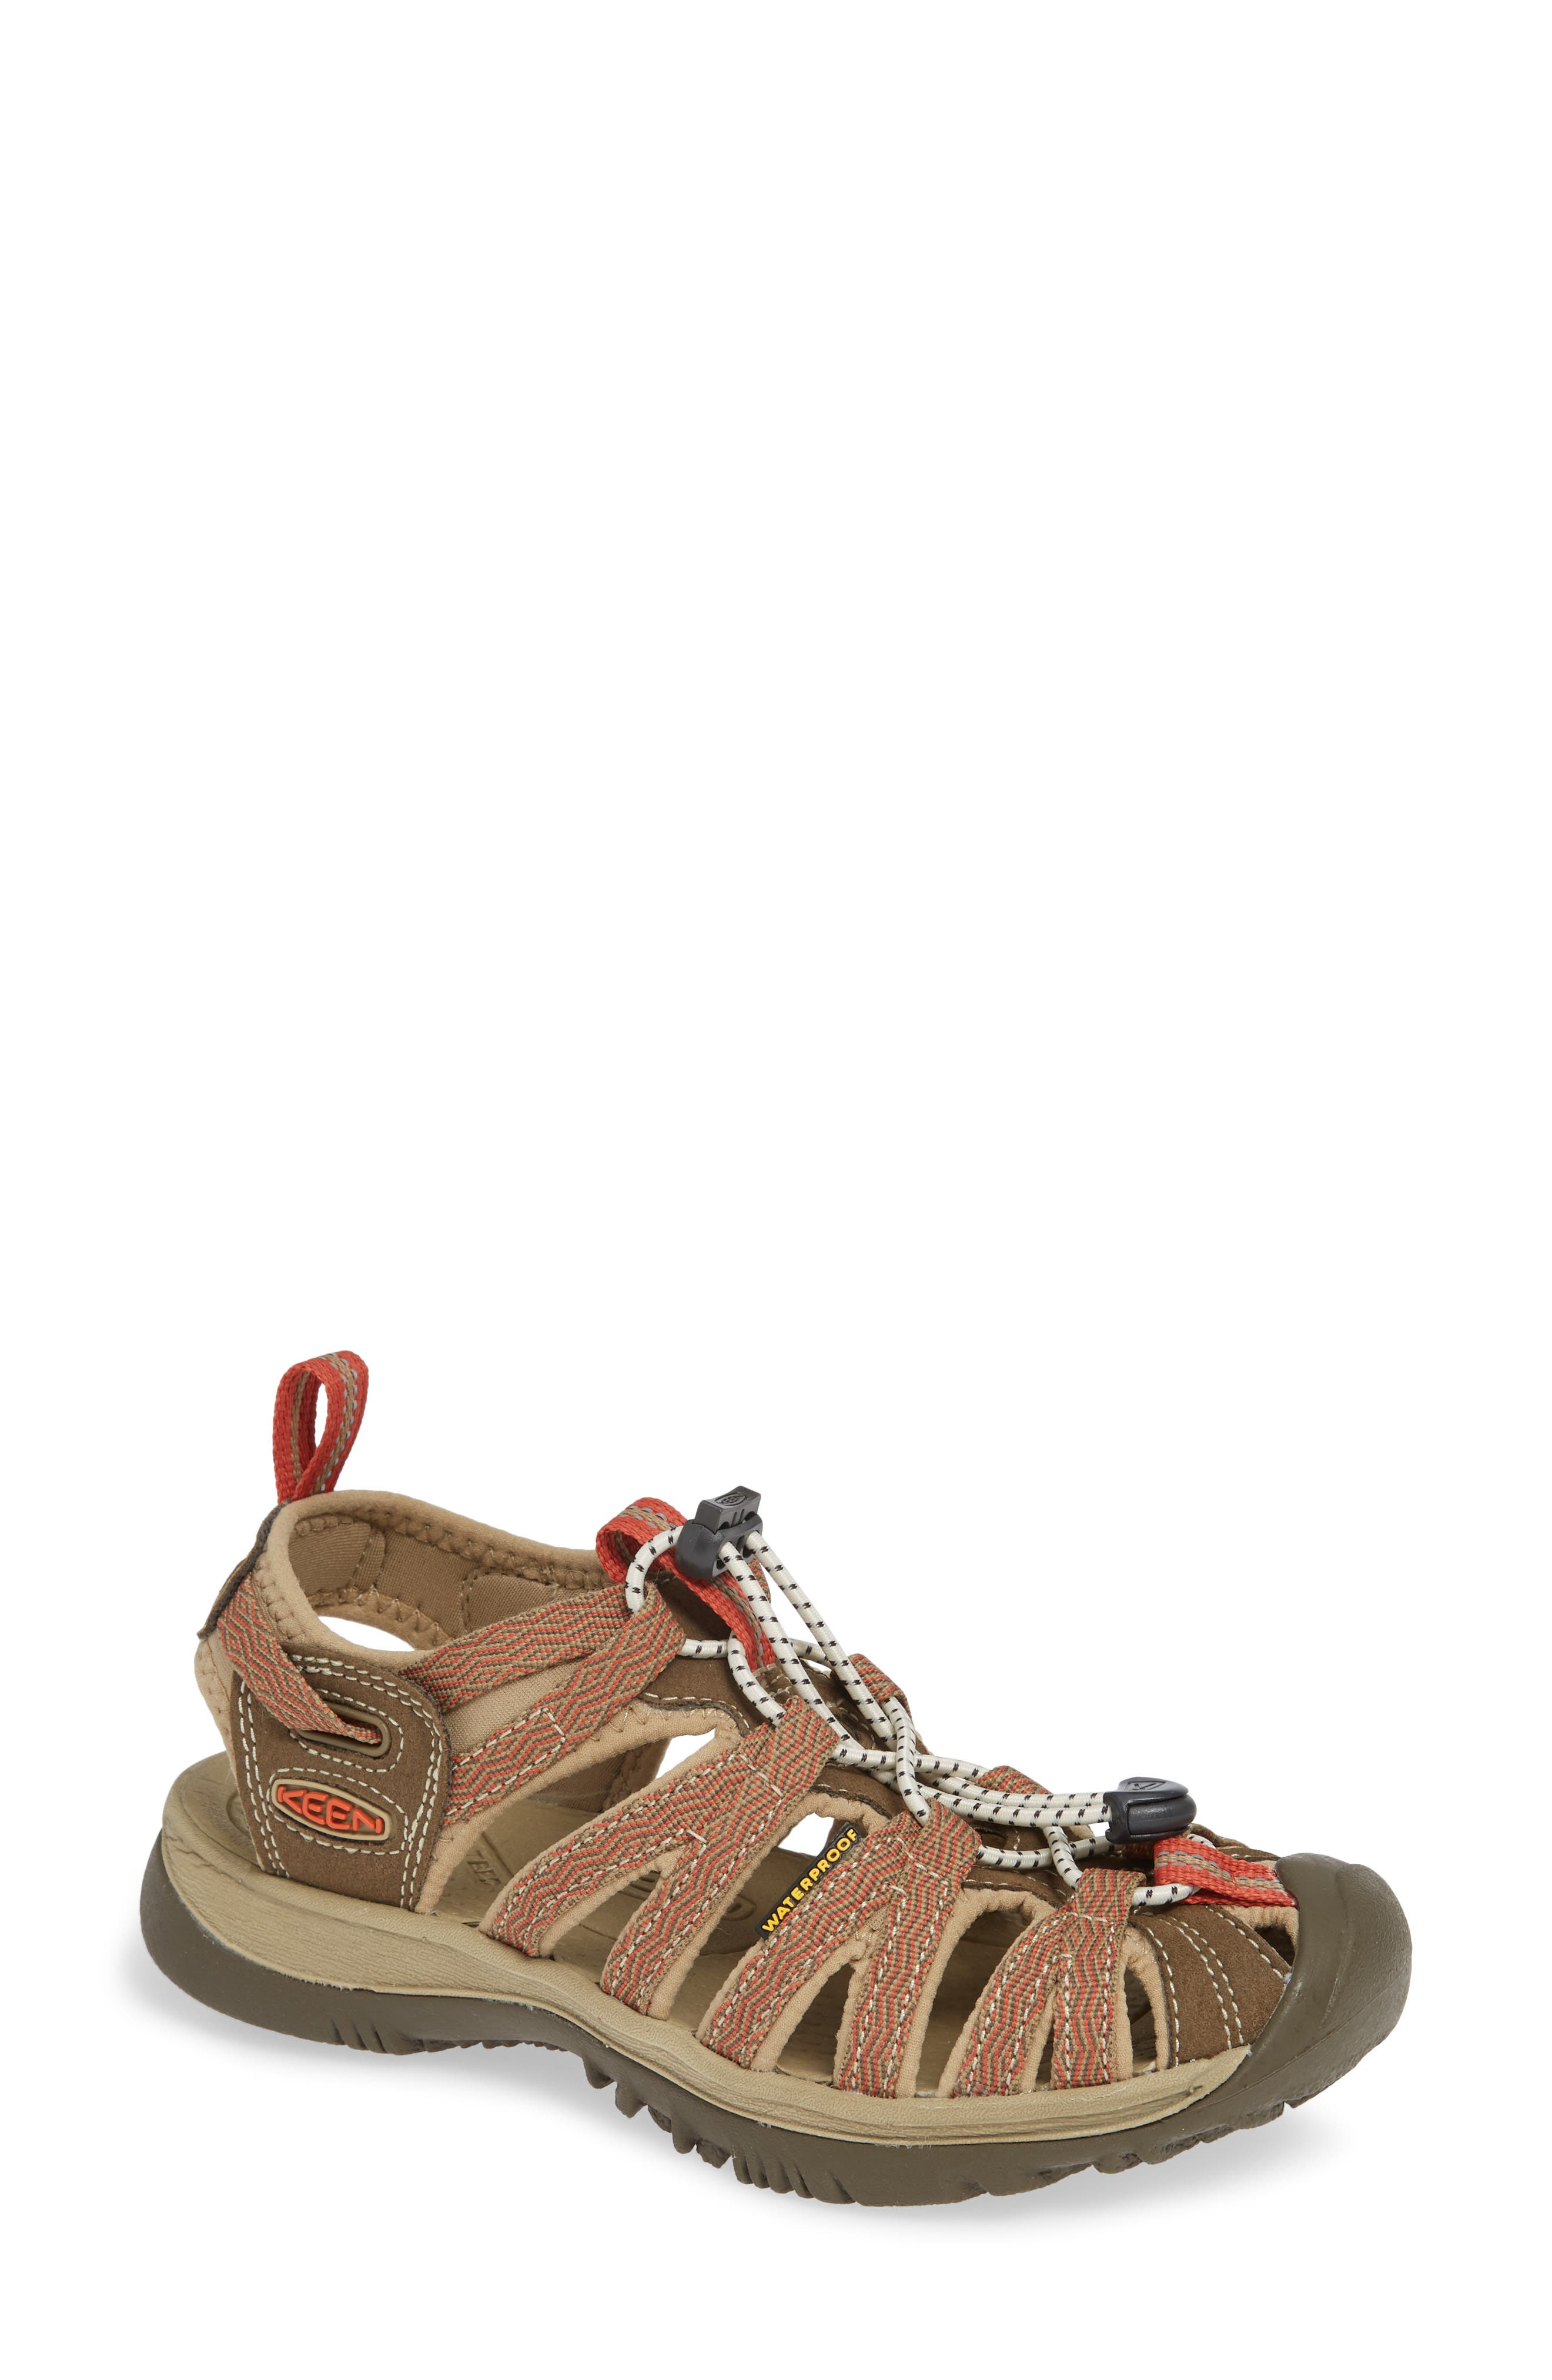 KEEN, 'Whisper' Water Friendly Sport Sandal, Main thumbnail 1, color, CANTEEN/ LANGOUSTINO